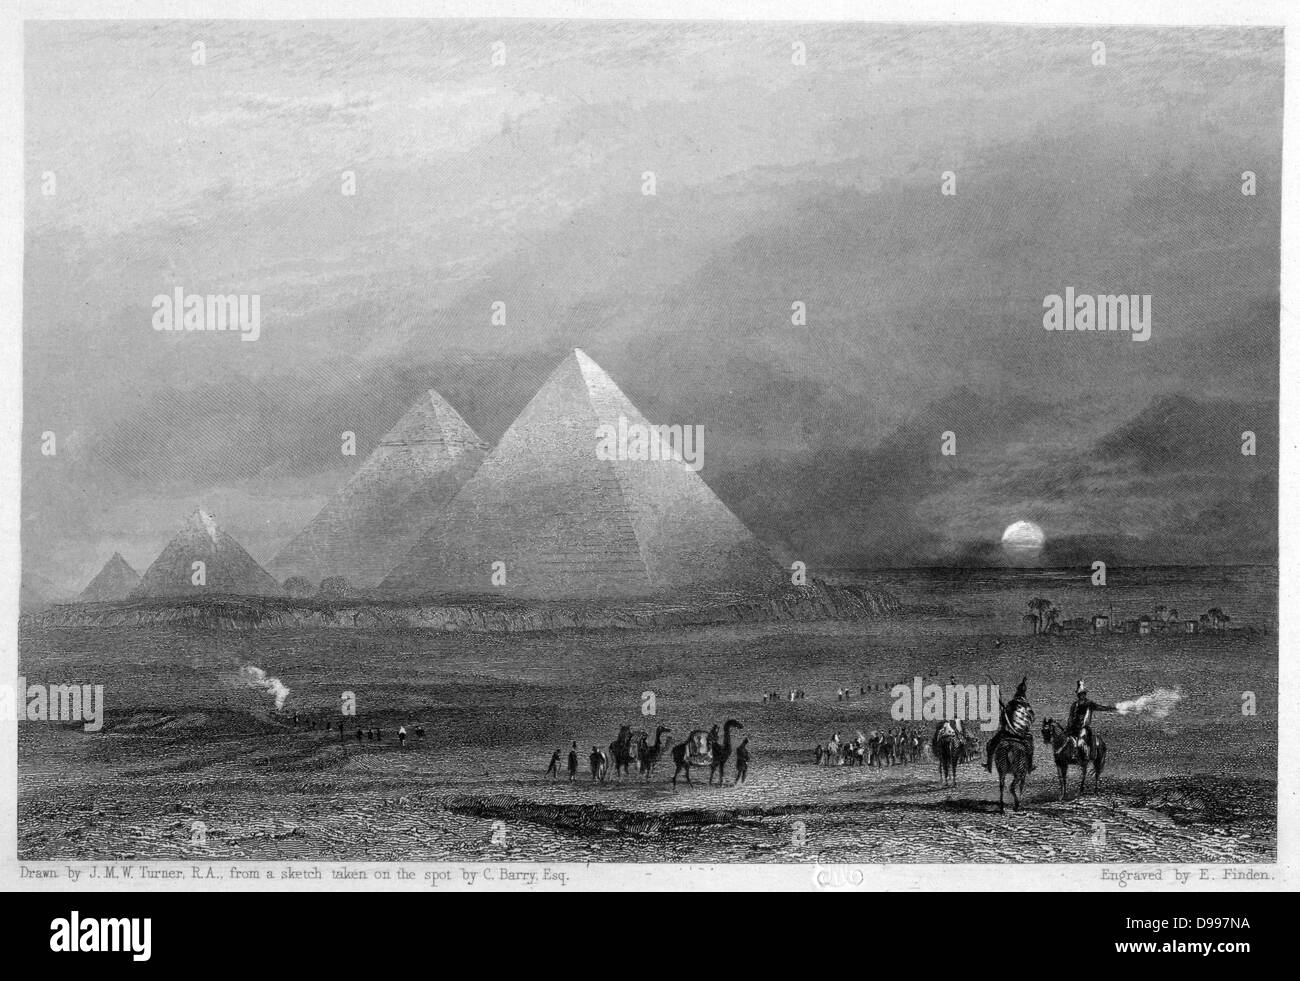 The Pyramids after a sketch by o the spot C Barry'. Engraving after JMW Turner. Egypt - Stock Image